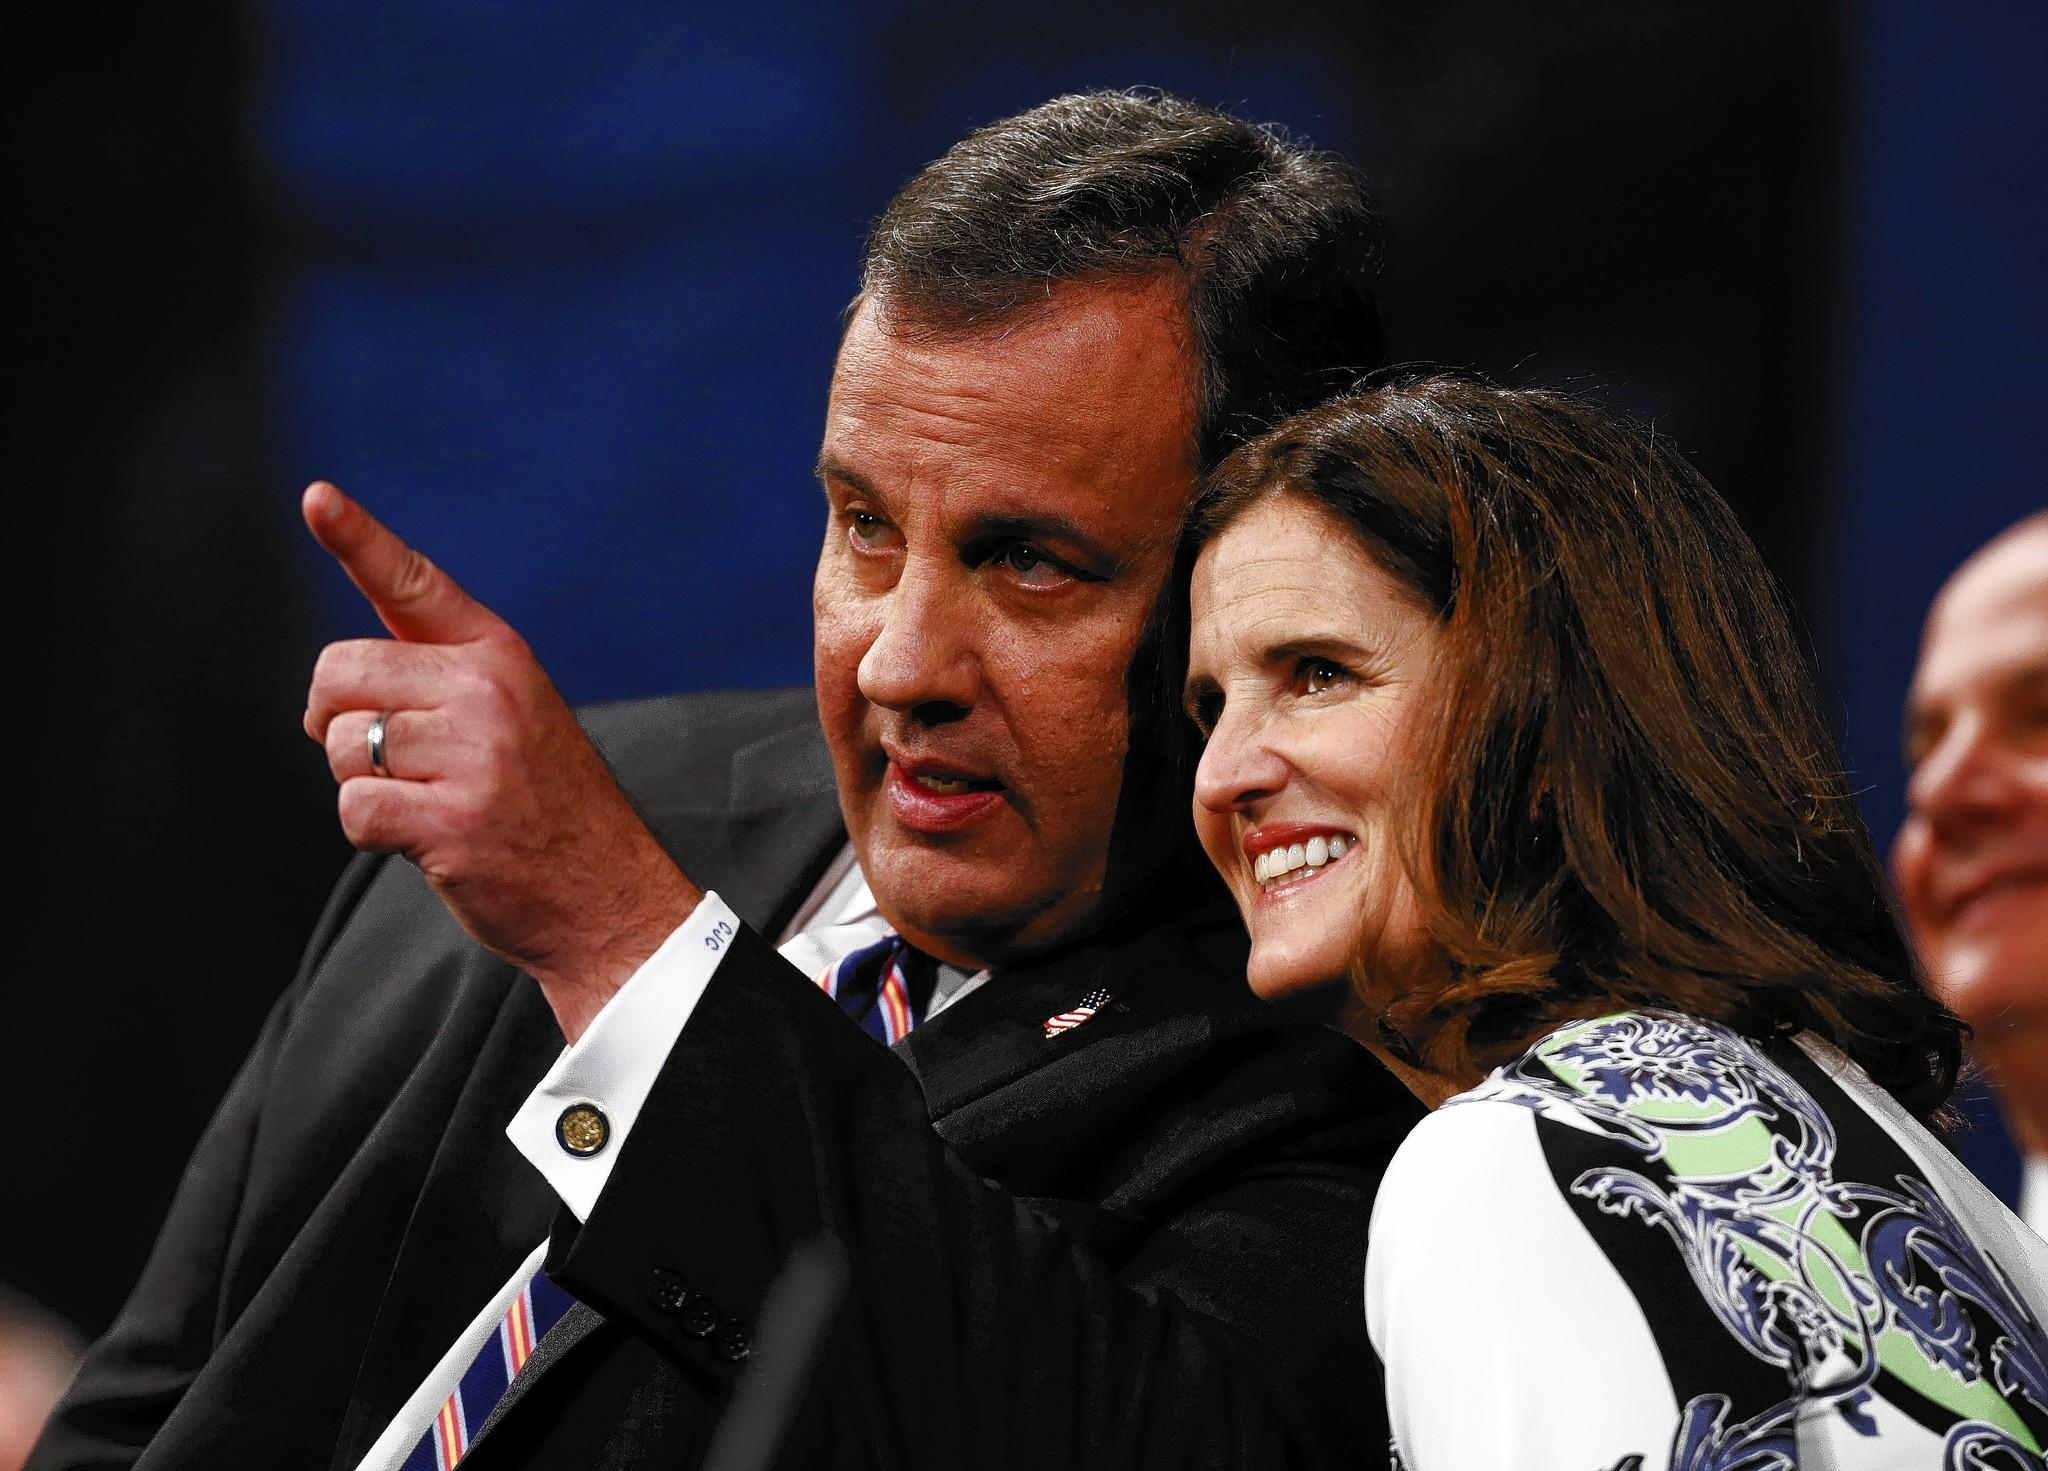 New Jersey Gov. Chris Christie and wife Mary Pat look at the crowd after he was sworn in for his second term on Jan. 21 in Trenton.